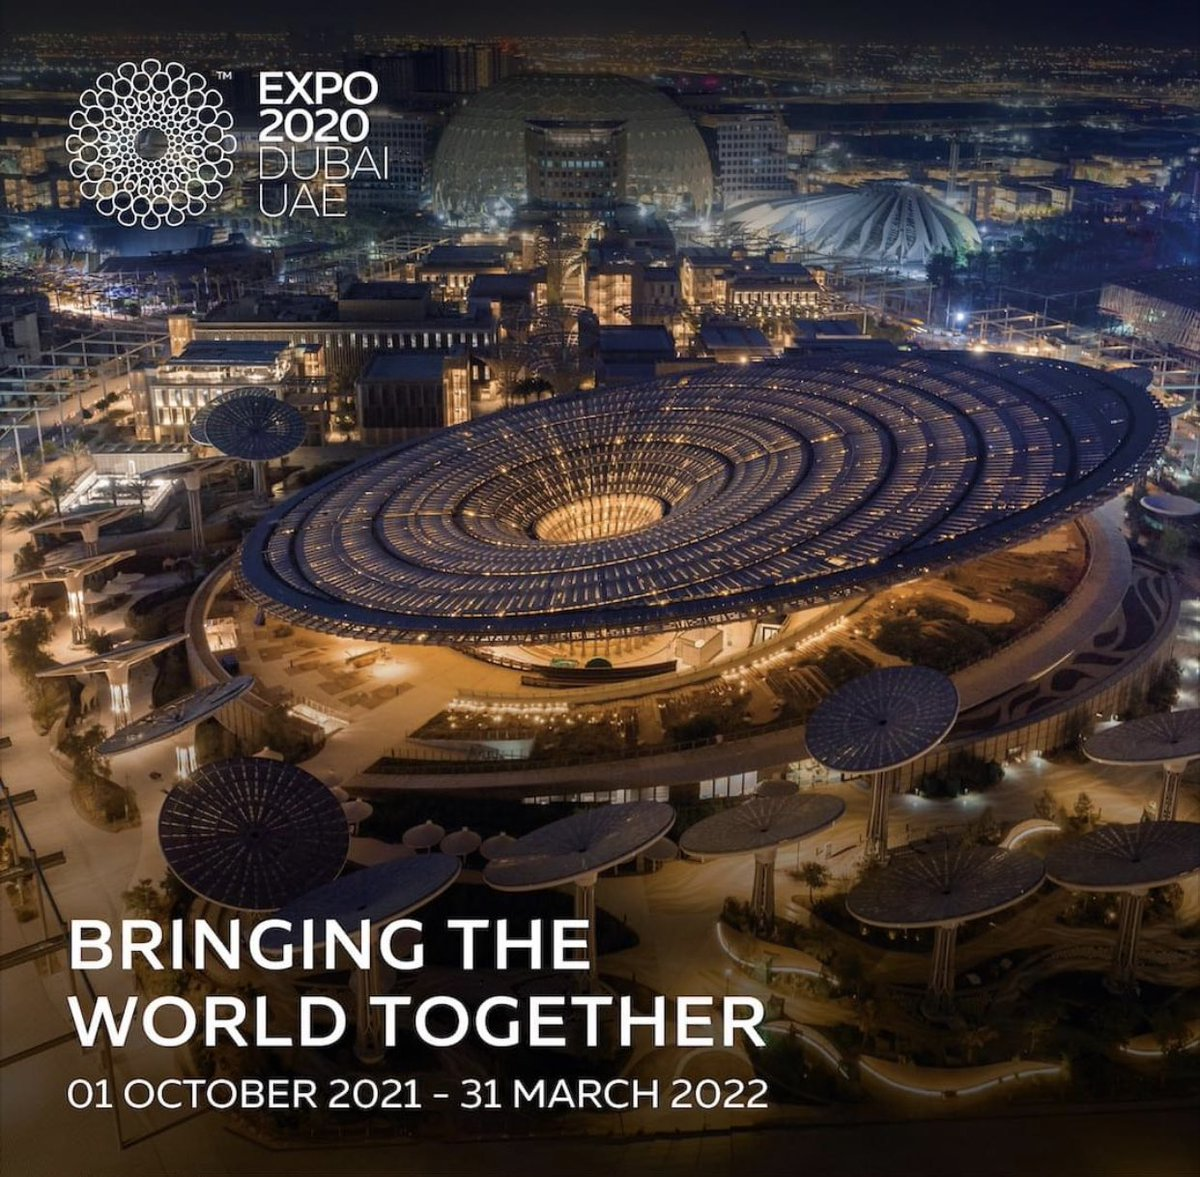 Excitement is building as we prepare to open our gates on 1 October 2021. Register now to receive the latest updates on #Expo2020 #Dubai. https://t.co/dzEIJdFBxa